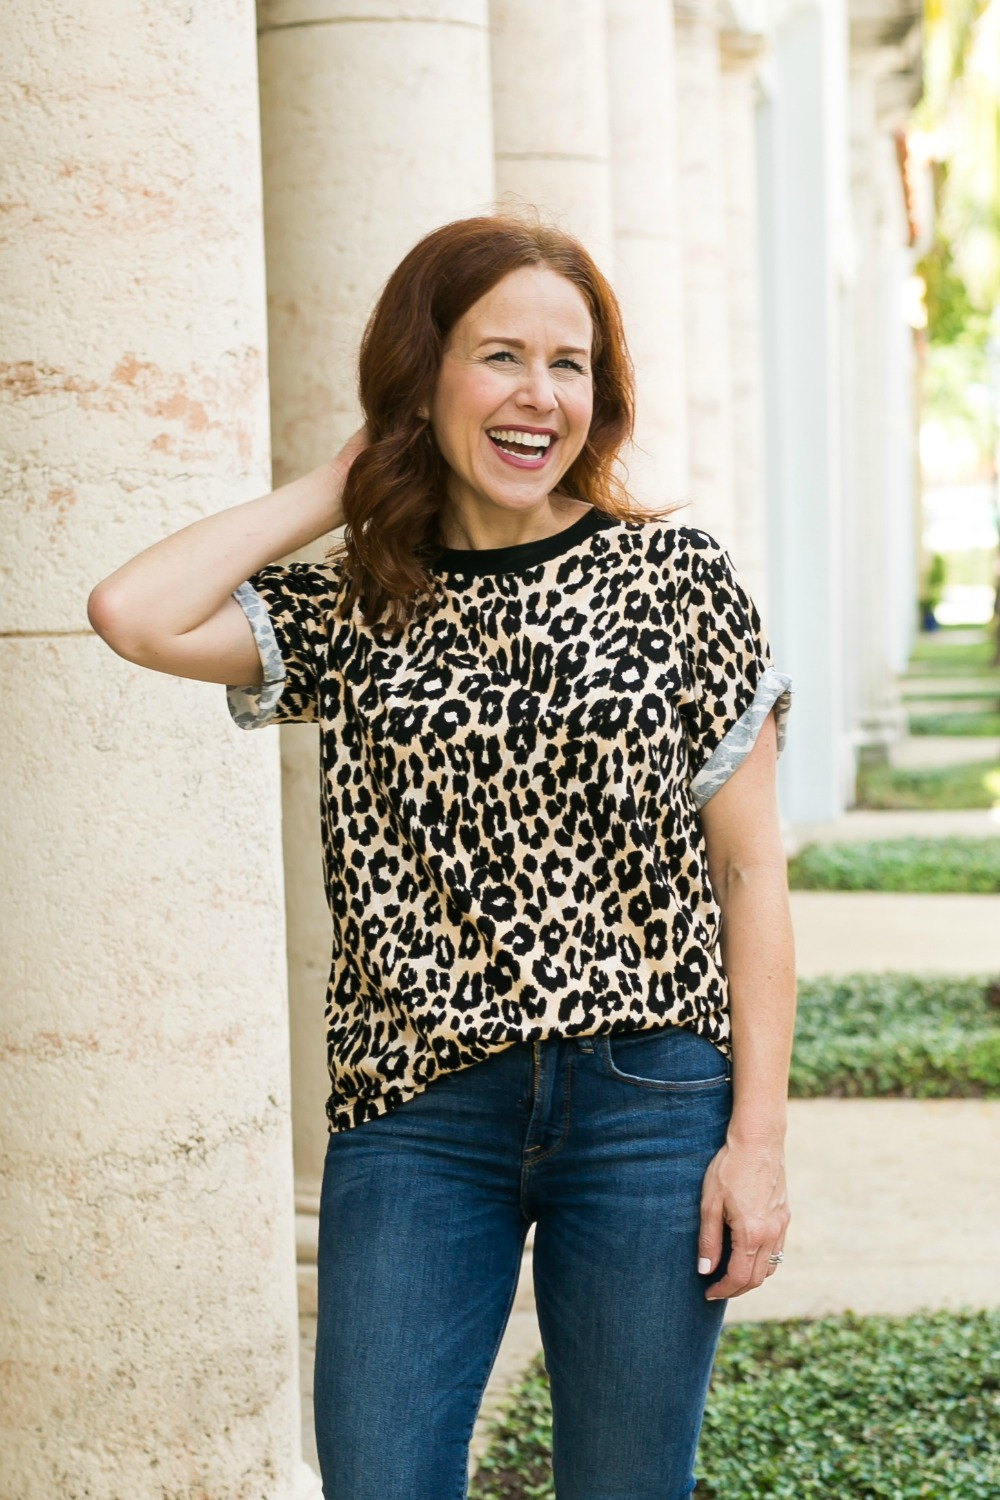 @themodernsavvy #fallstyle #leopard #momstyle | Good American | How real girls can style this fall's biggest trends including leopard | Fall Trends in Warm Weather: Leopard featured by popular Florida life and style blogger The Modern Savvy